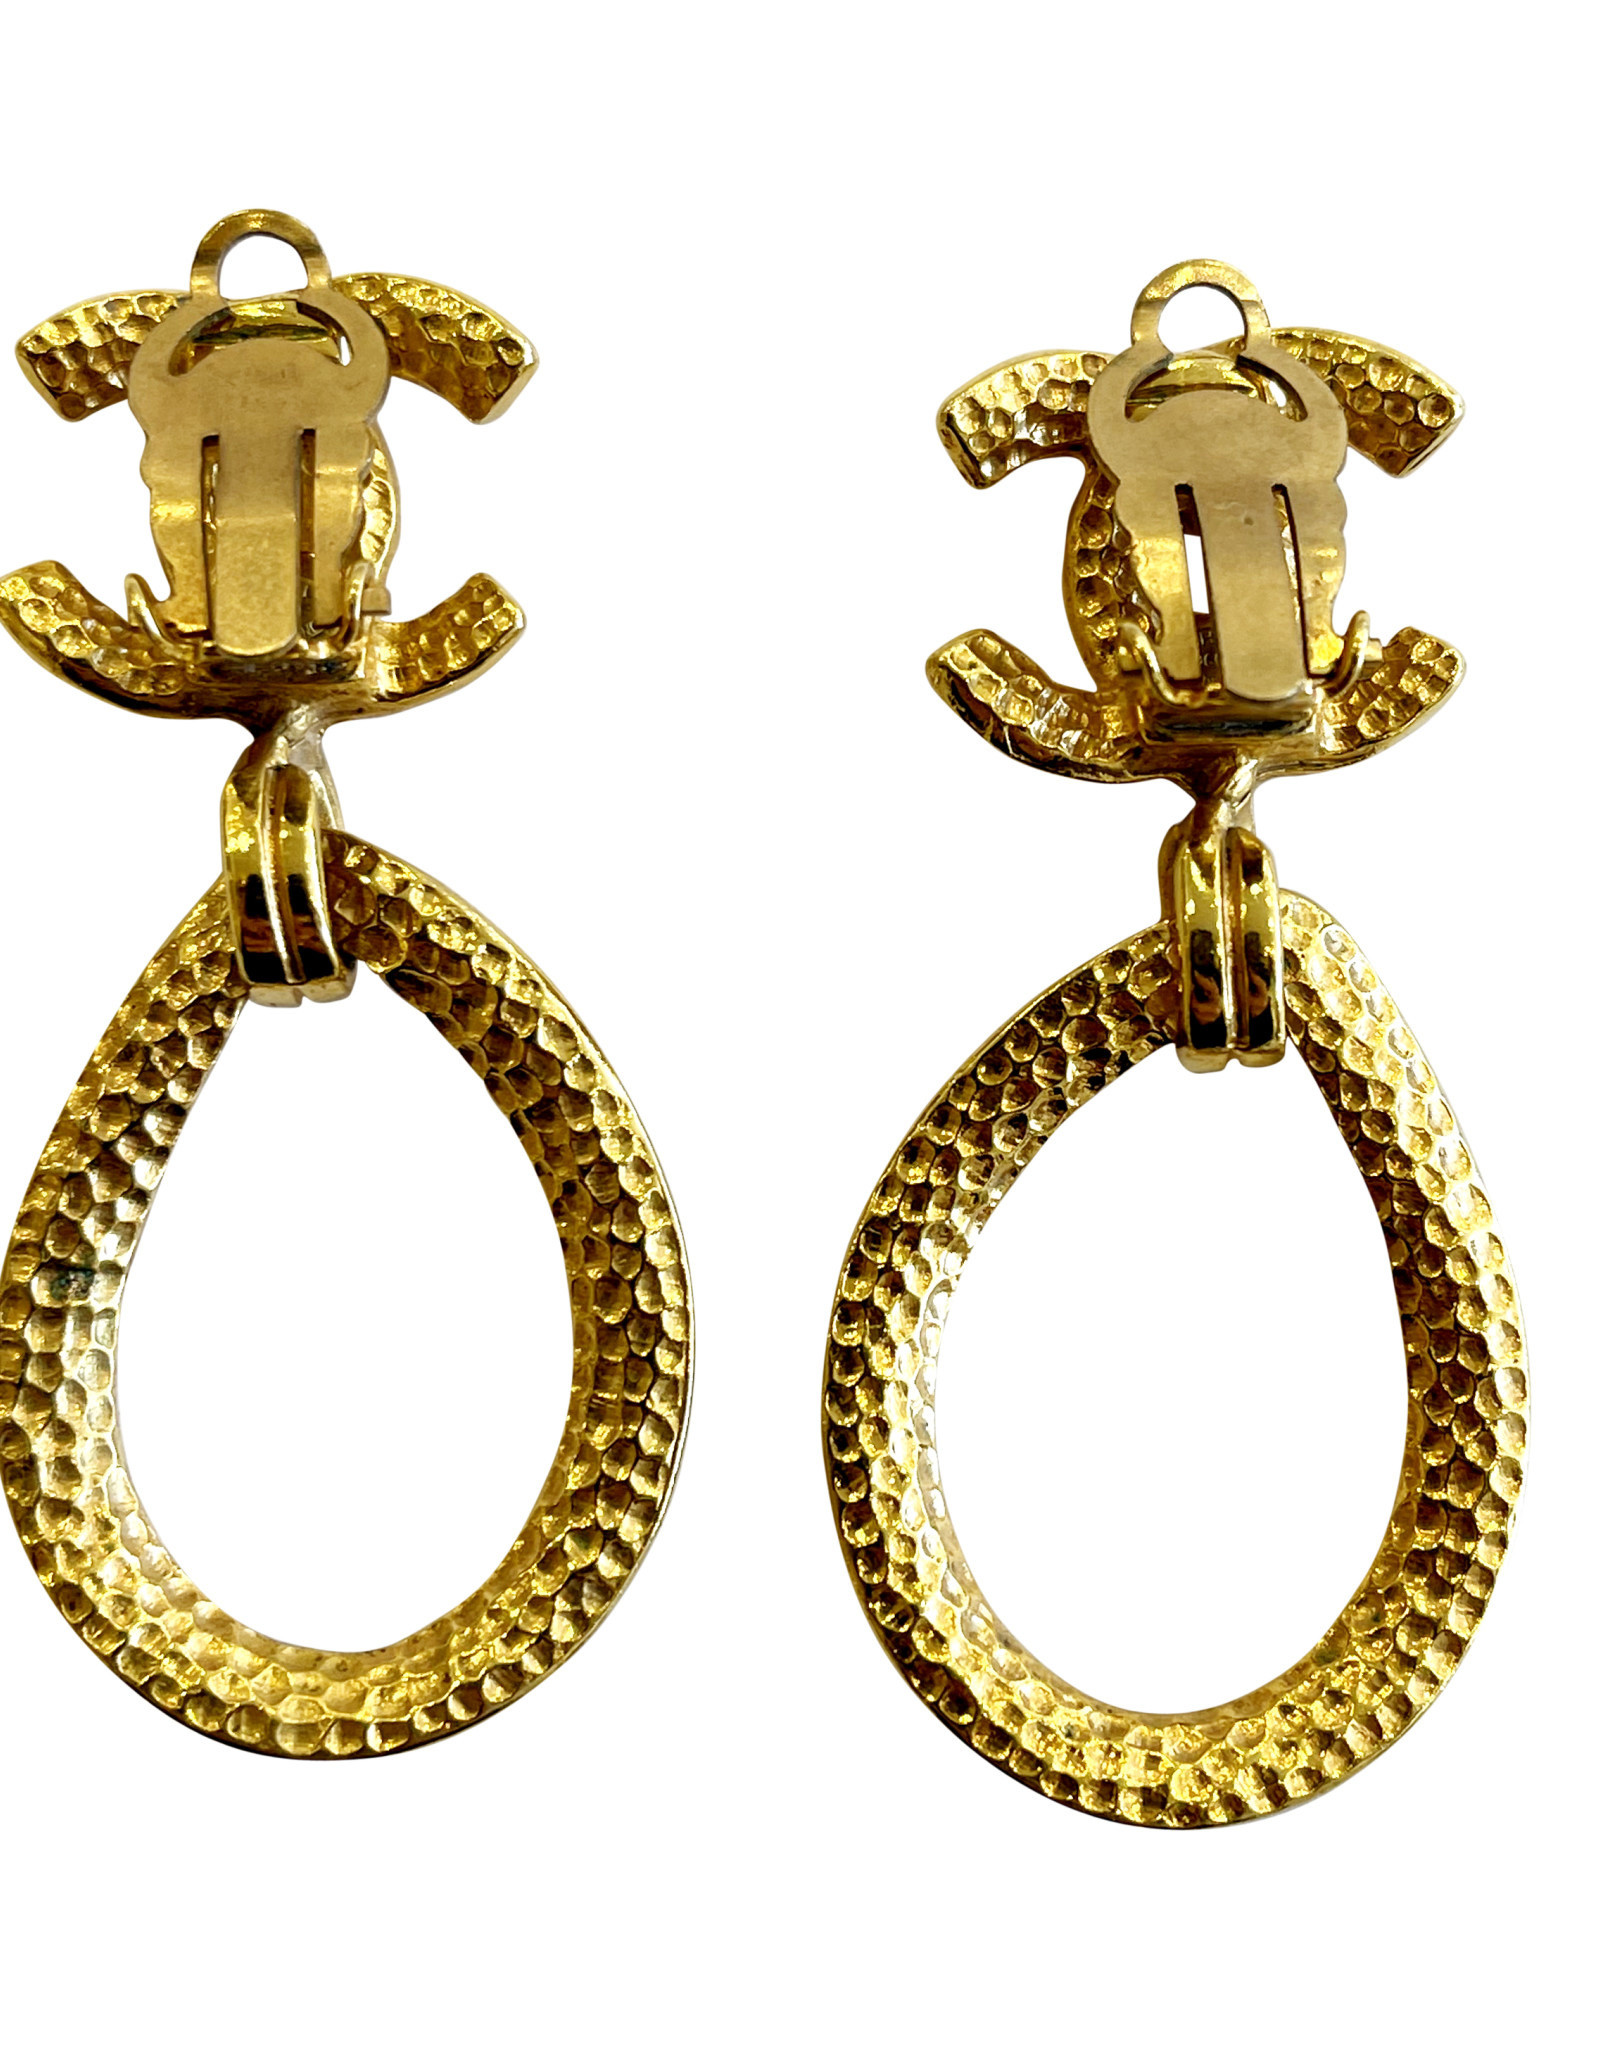 Chanel Chanel Oval Drop Clip Earrings (1996 Vintage)